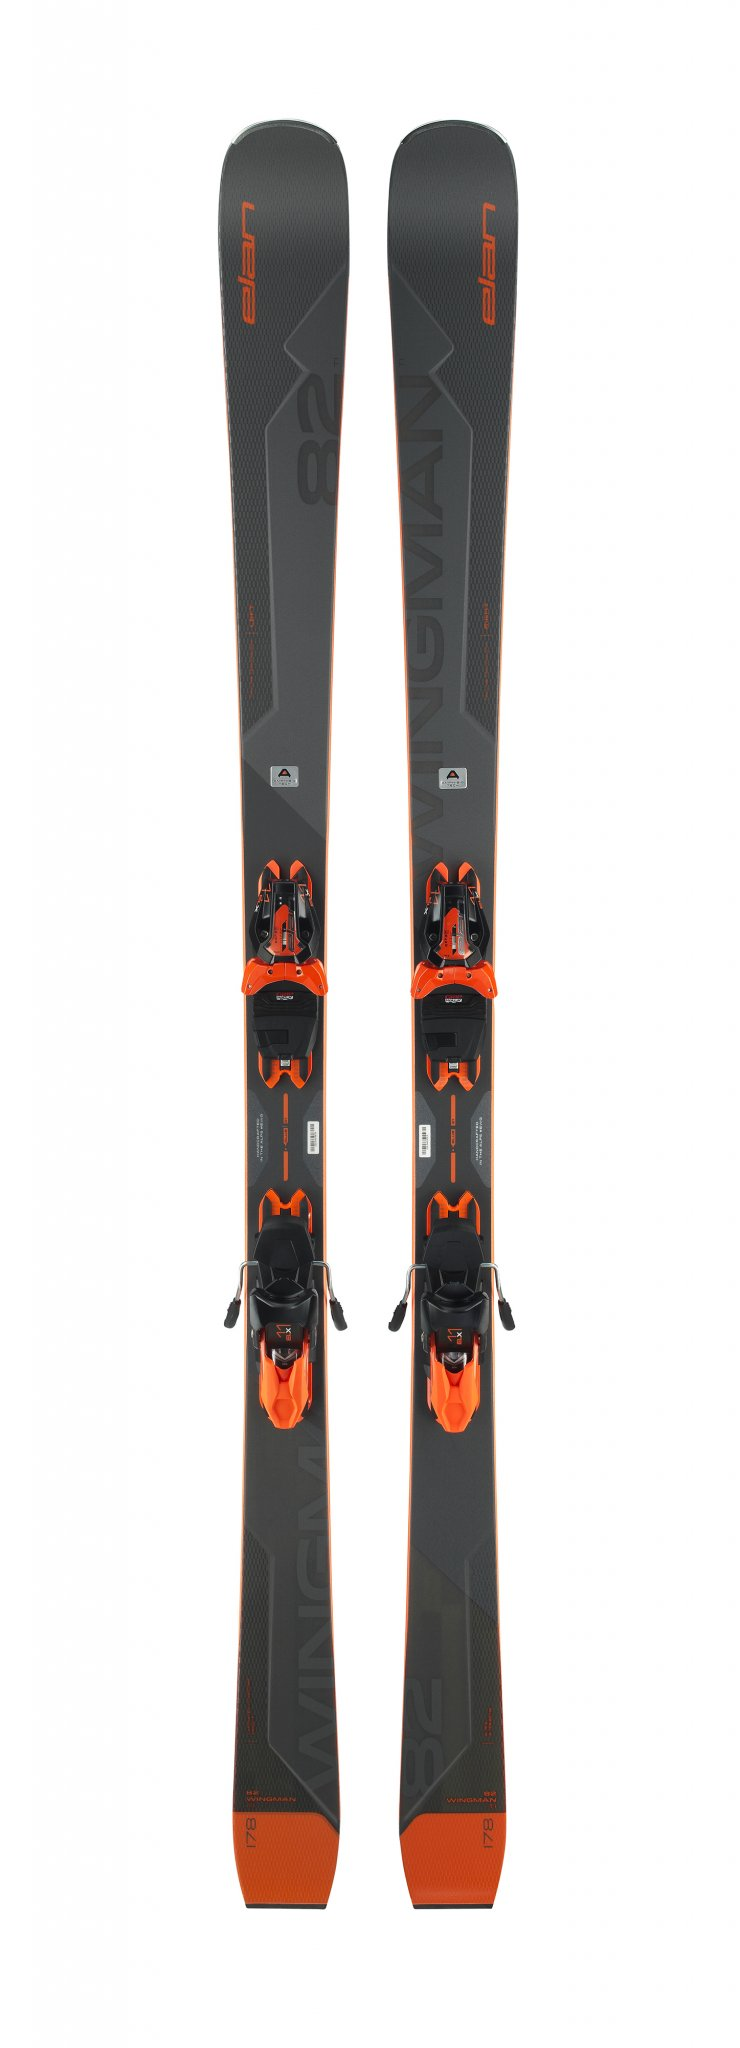 Image 0 of ELAN - WINGMAN 82 TI Skis + ELX 11.0 GW SHIFT Binding - 2021